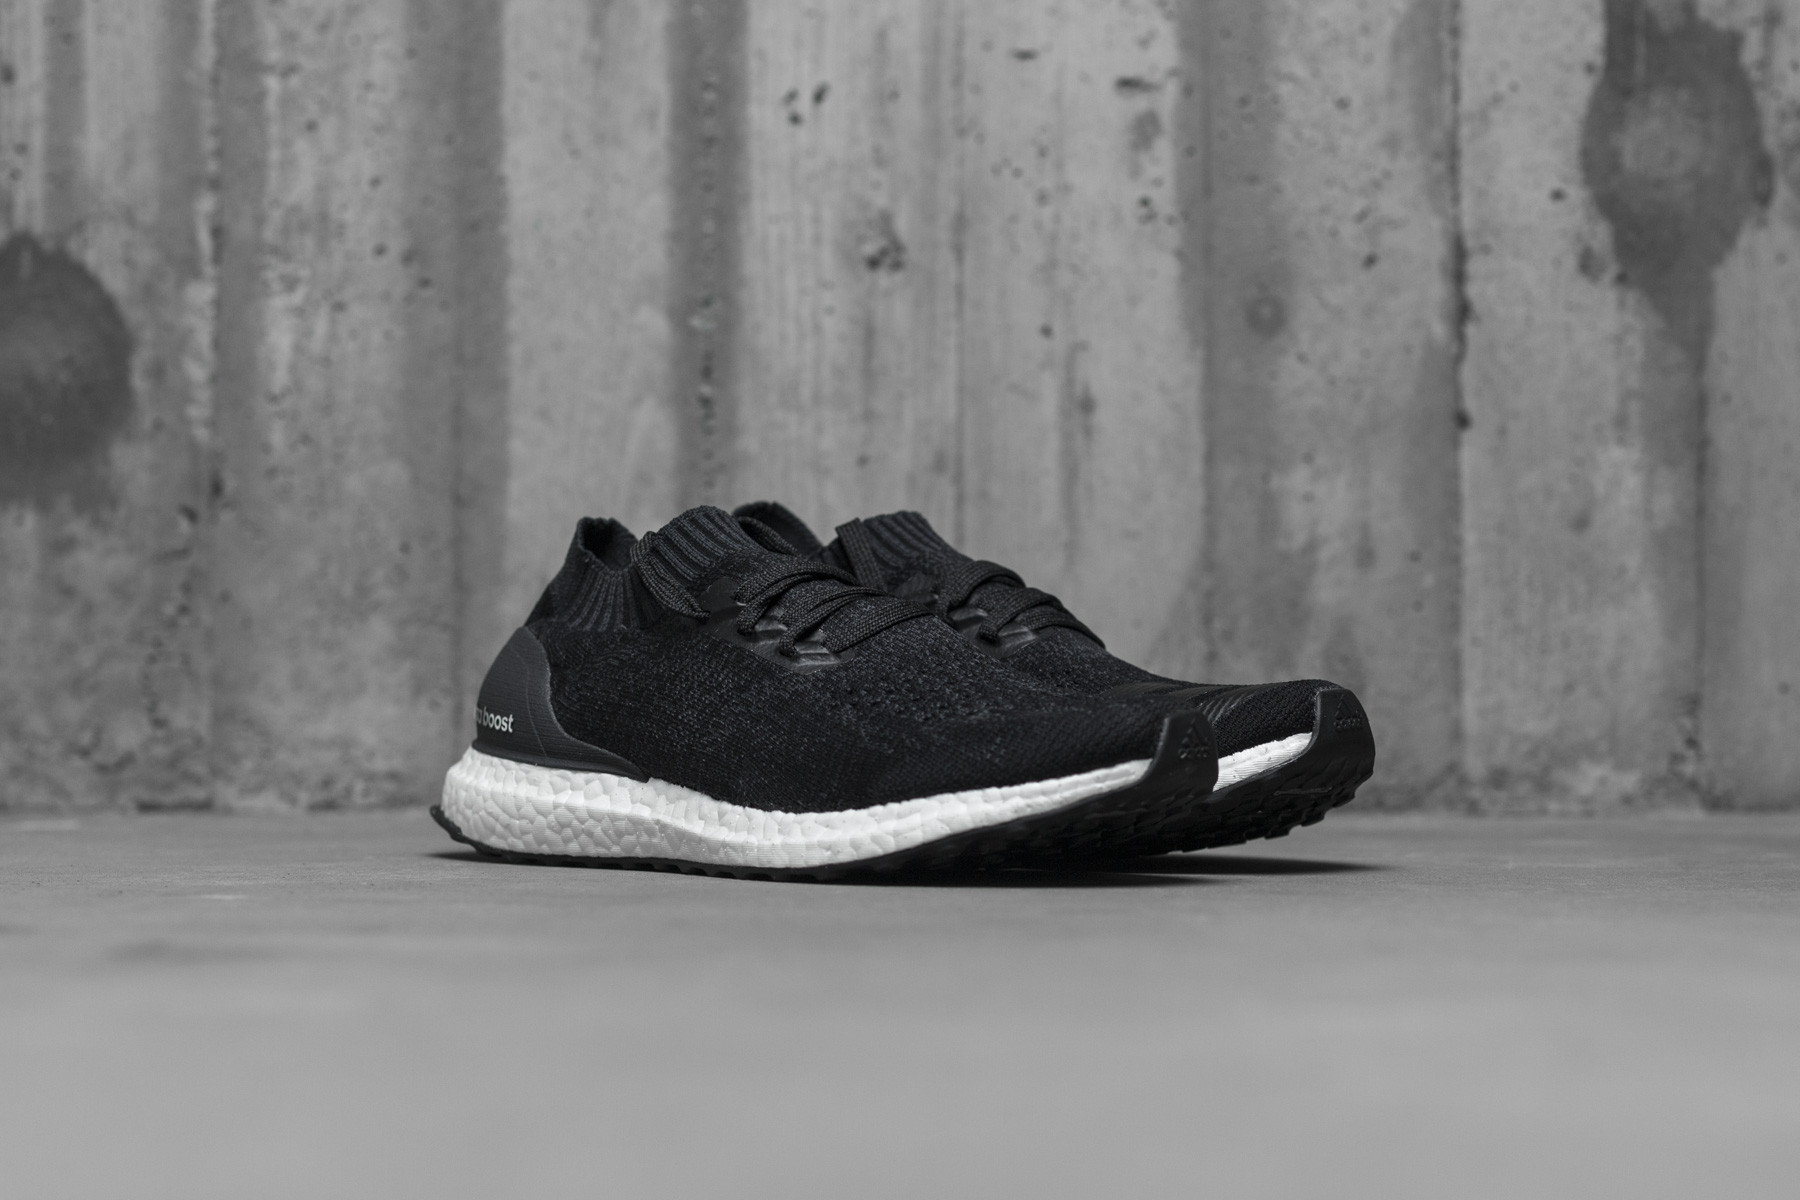 W Adidas UltraBOOST Uncaged Low top Sneakers Sneaker.no